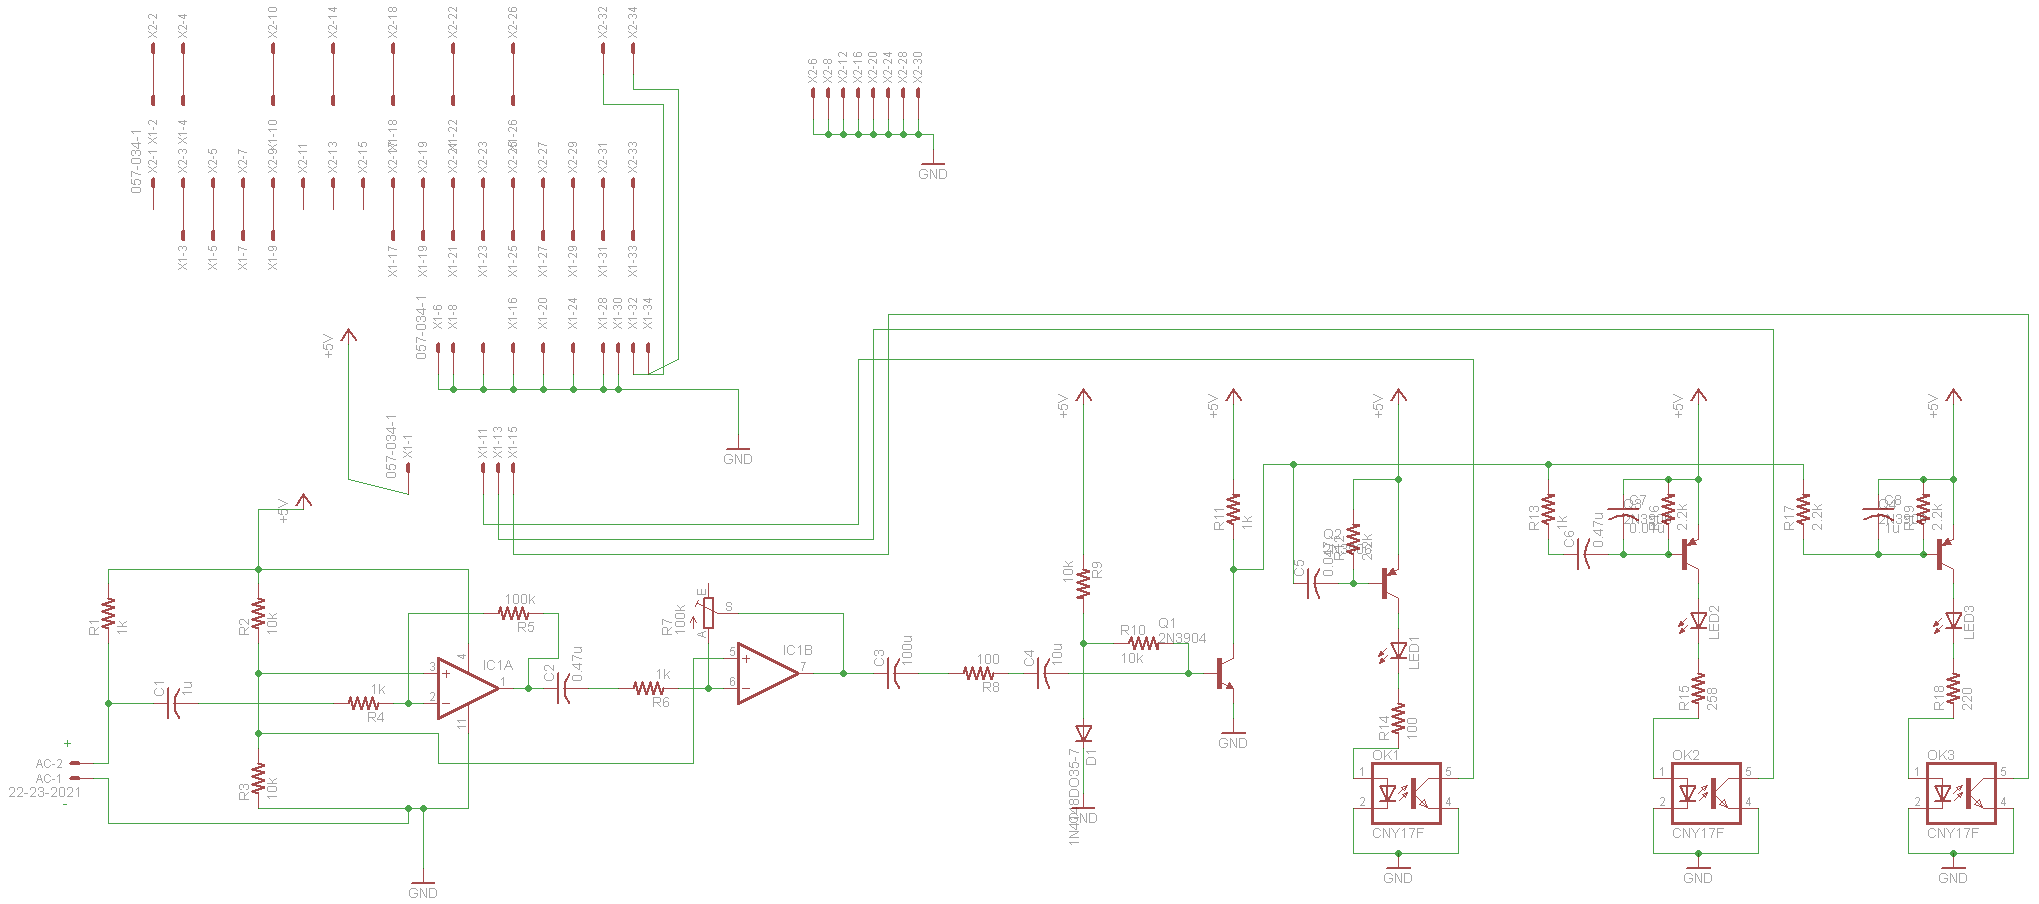 circuit design and testing software design